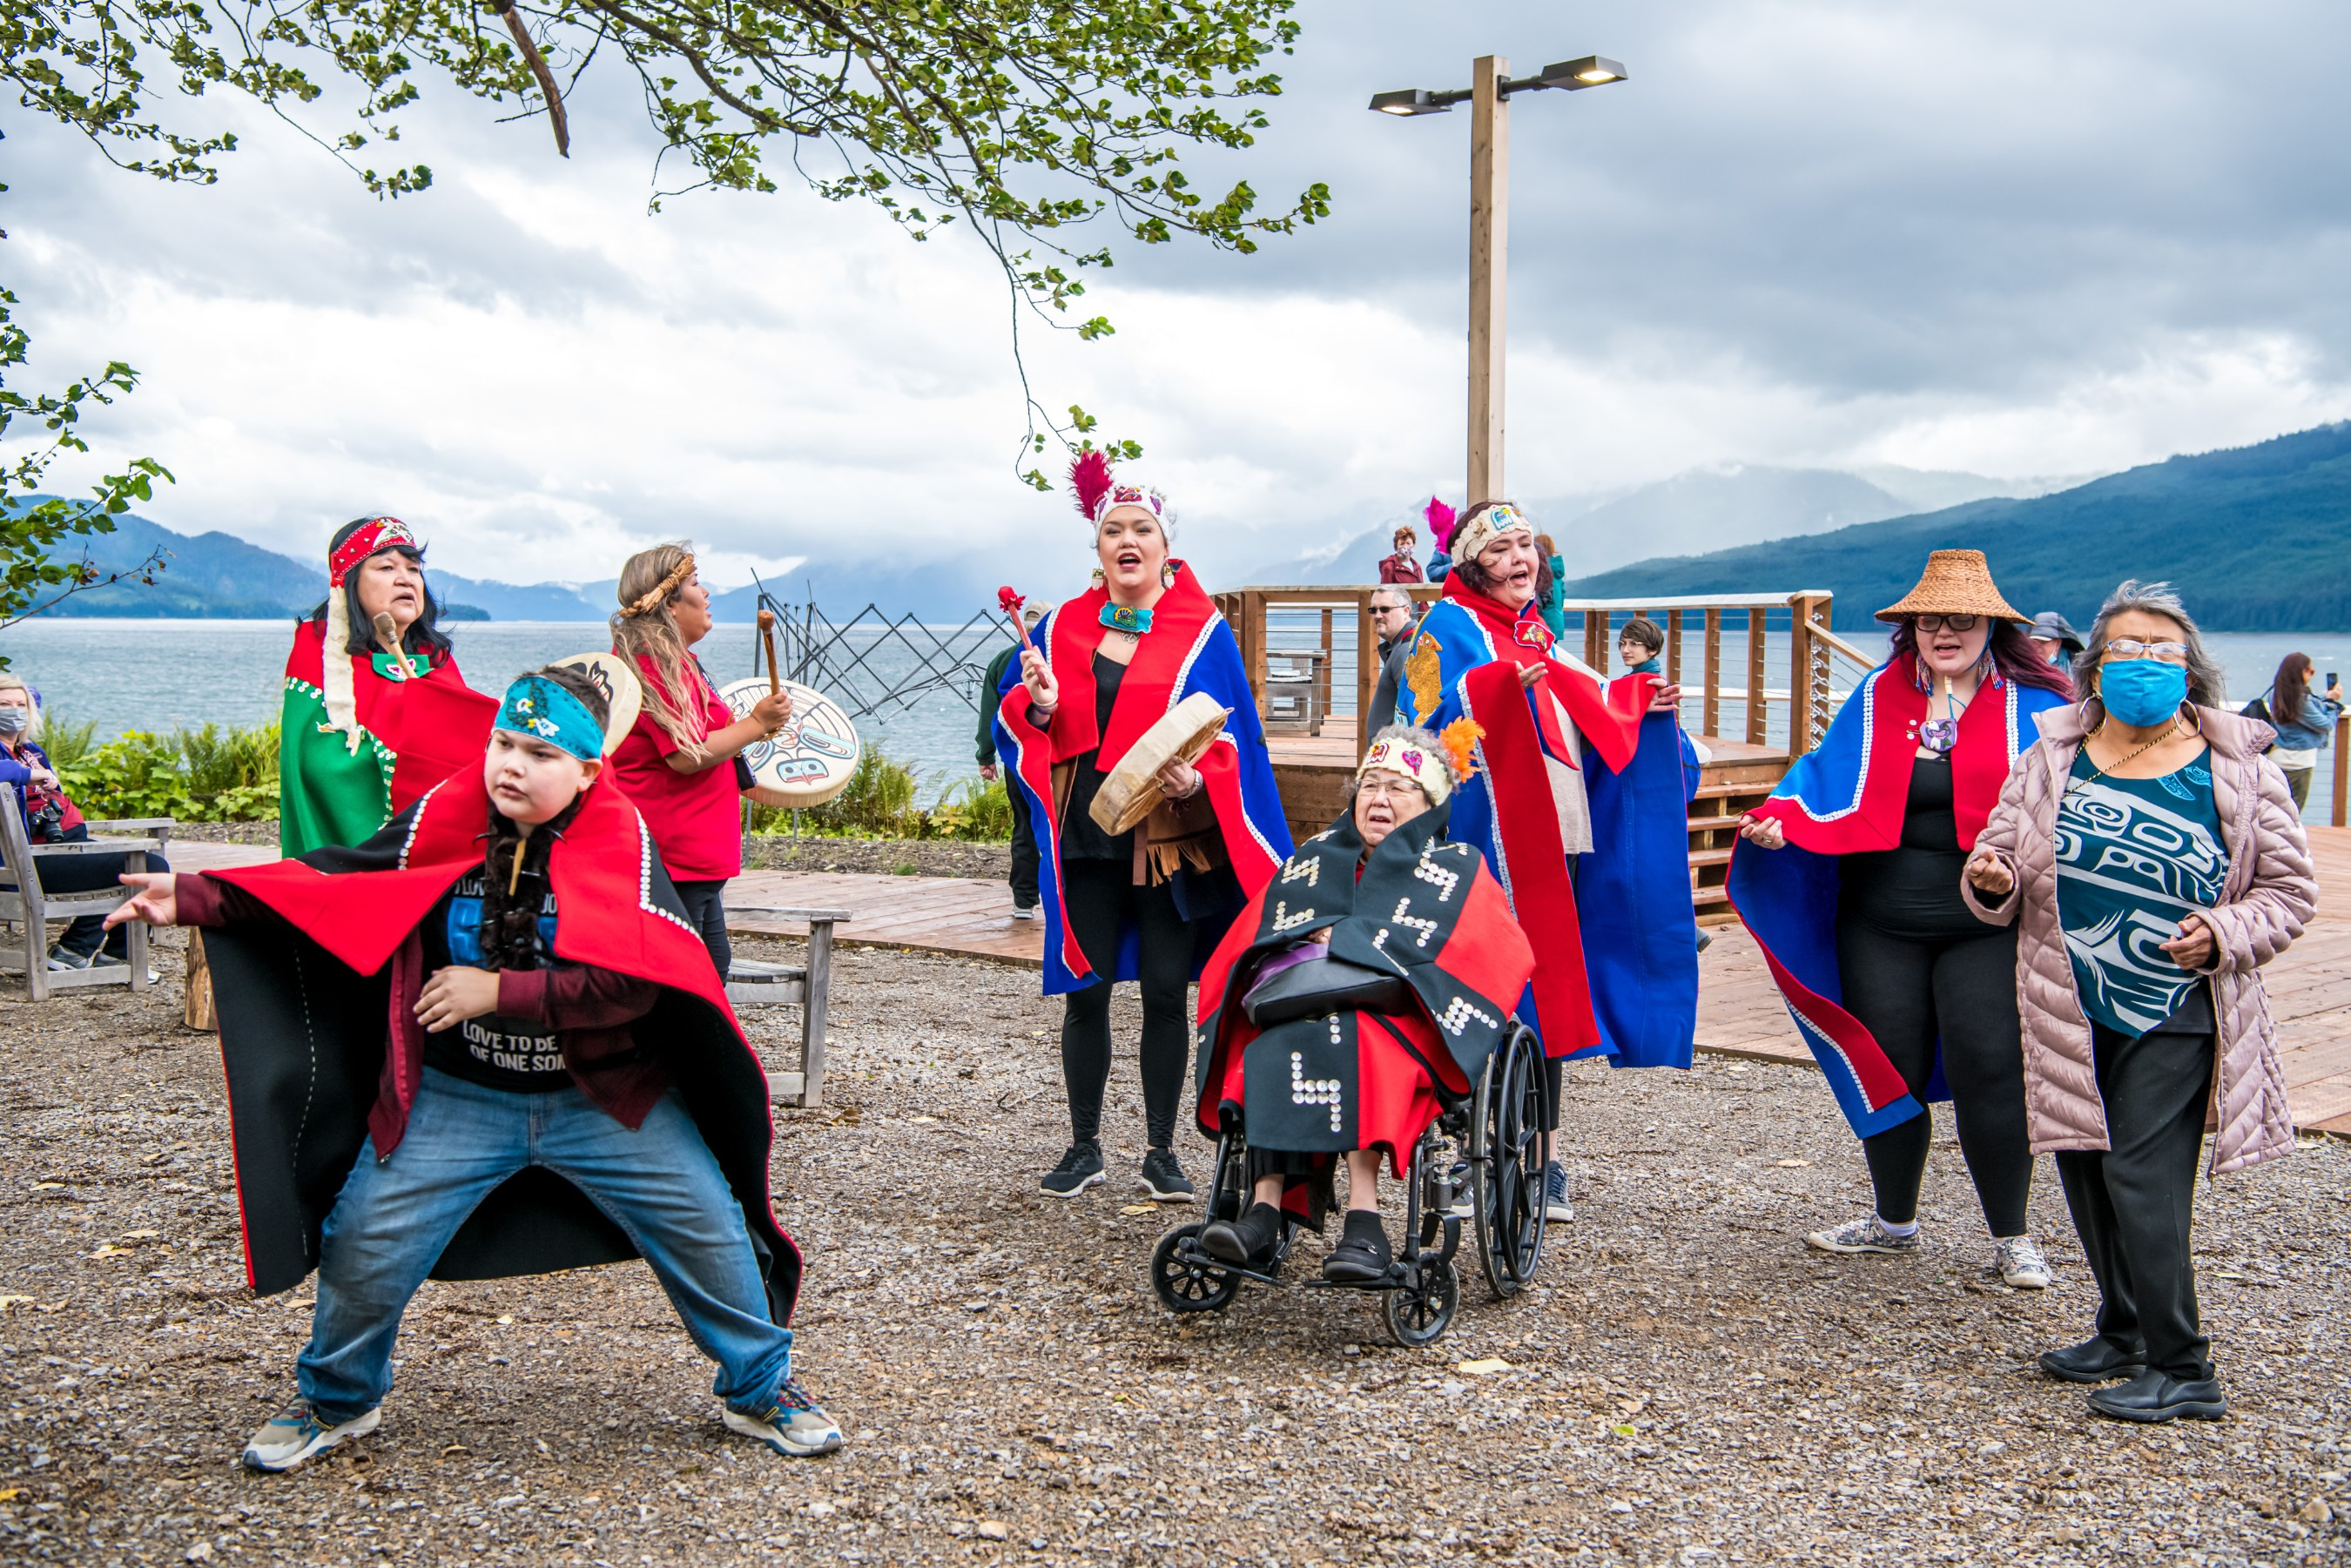 Norwegian Cruise Line guests were welcomed with a ceremonial dance performed by the local native community during Norwegian Encore's debut call to Icy Strait Point, Alaska. Photos by Alive Coverage.